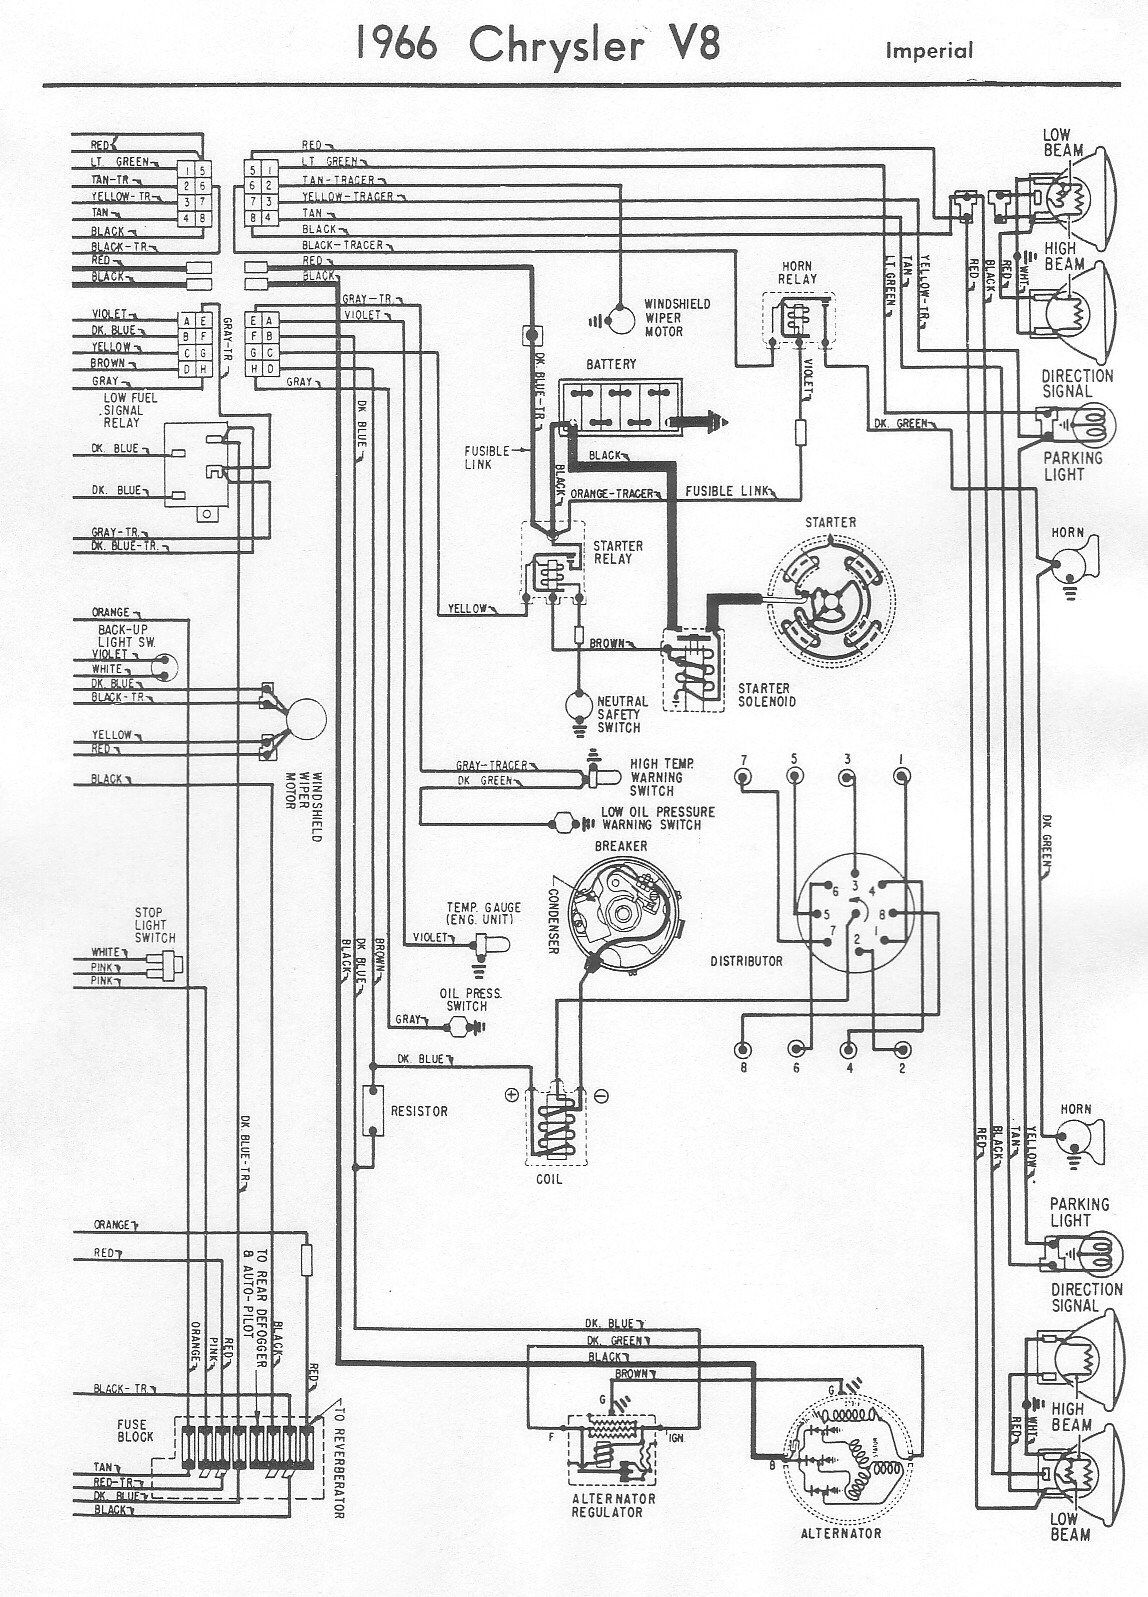 Engine Wiring Diagram 1968 El Camino Library 84 85 Camaro Dash Schematic Auto Electrical For Jd 450